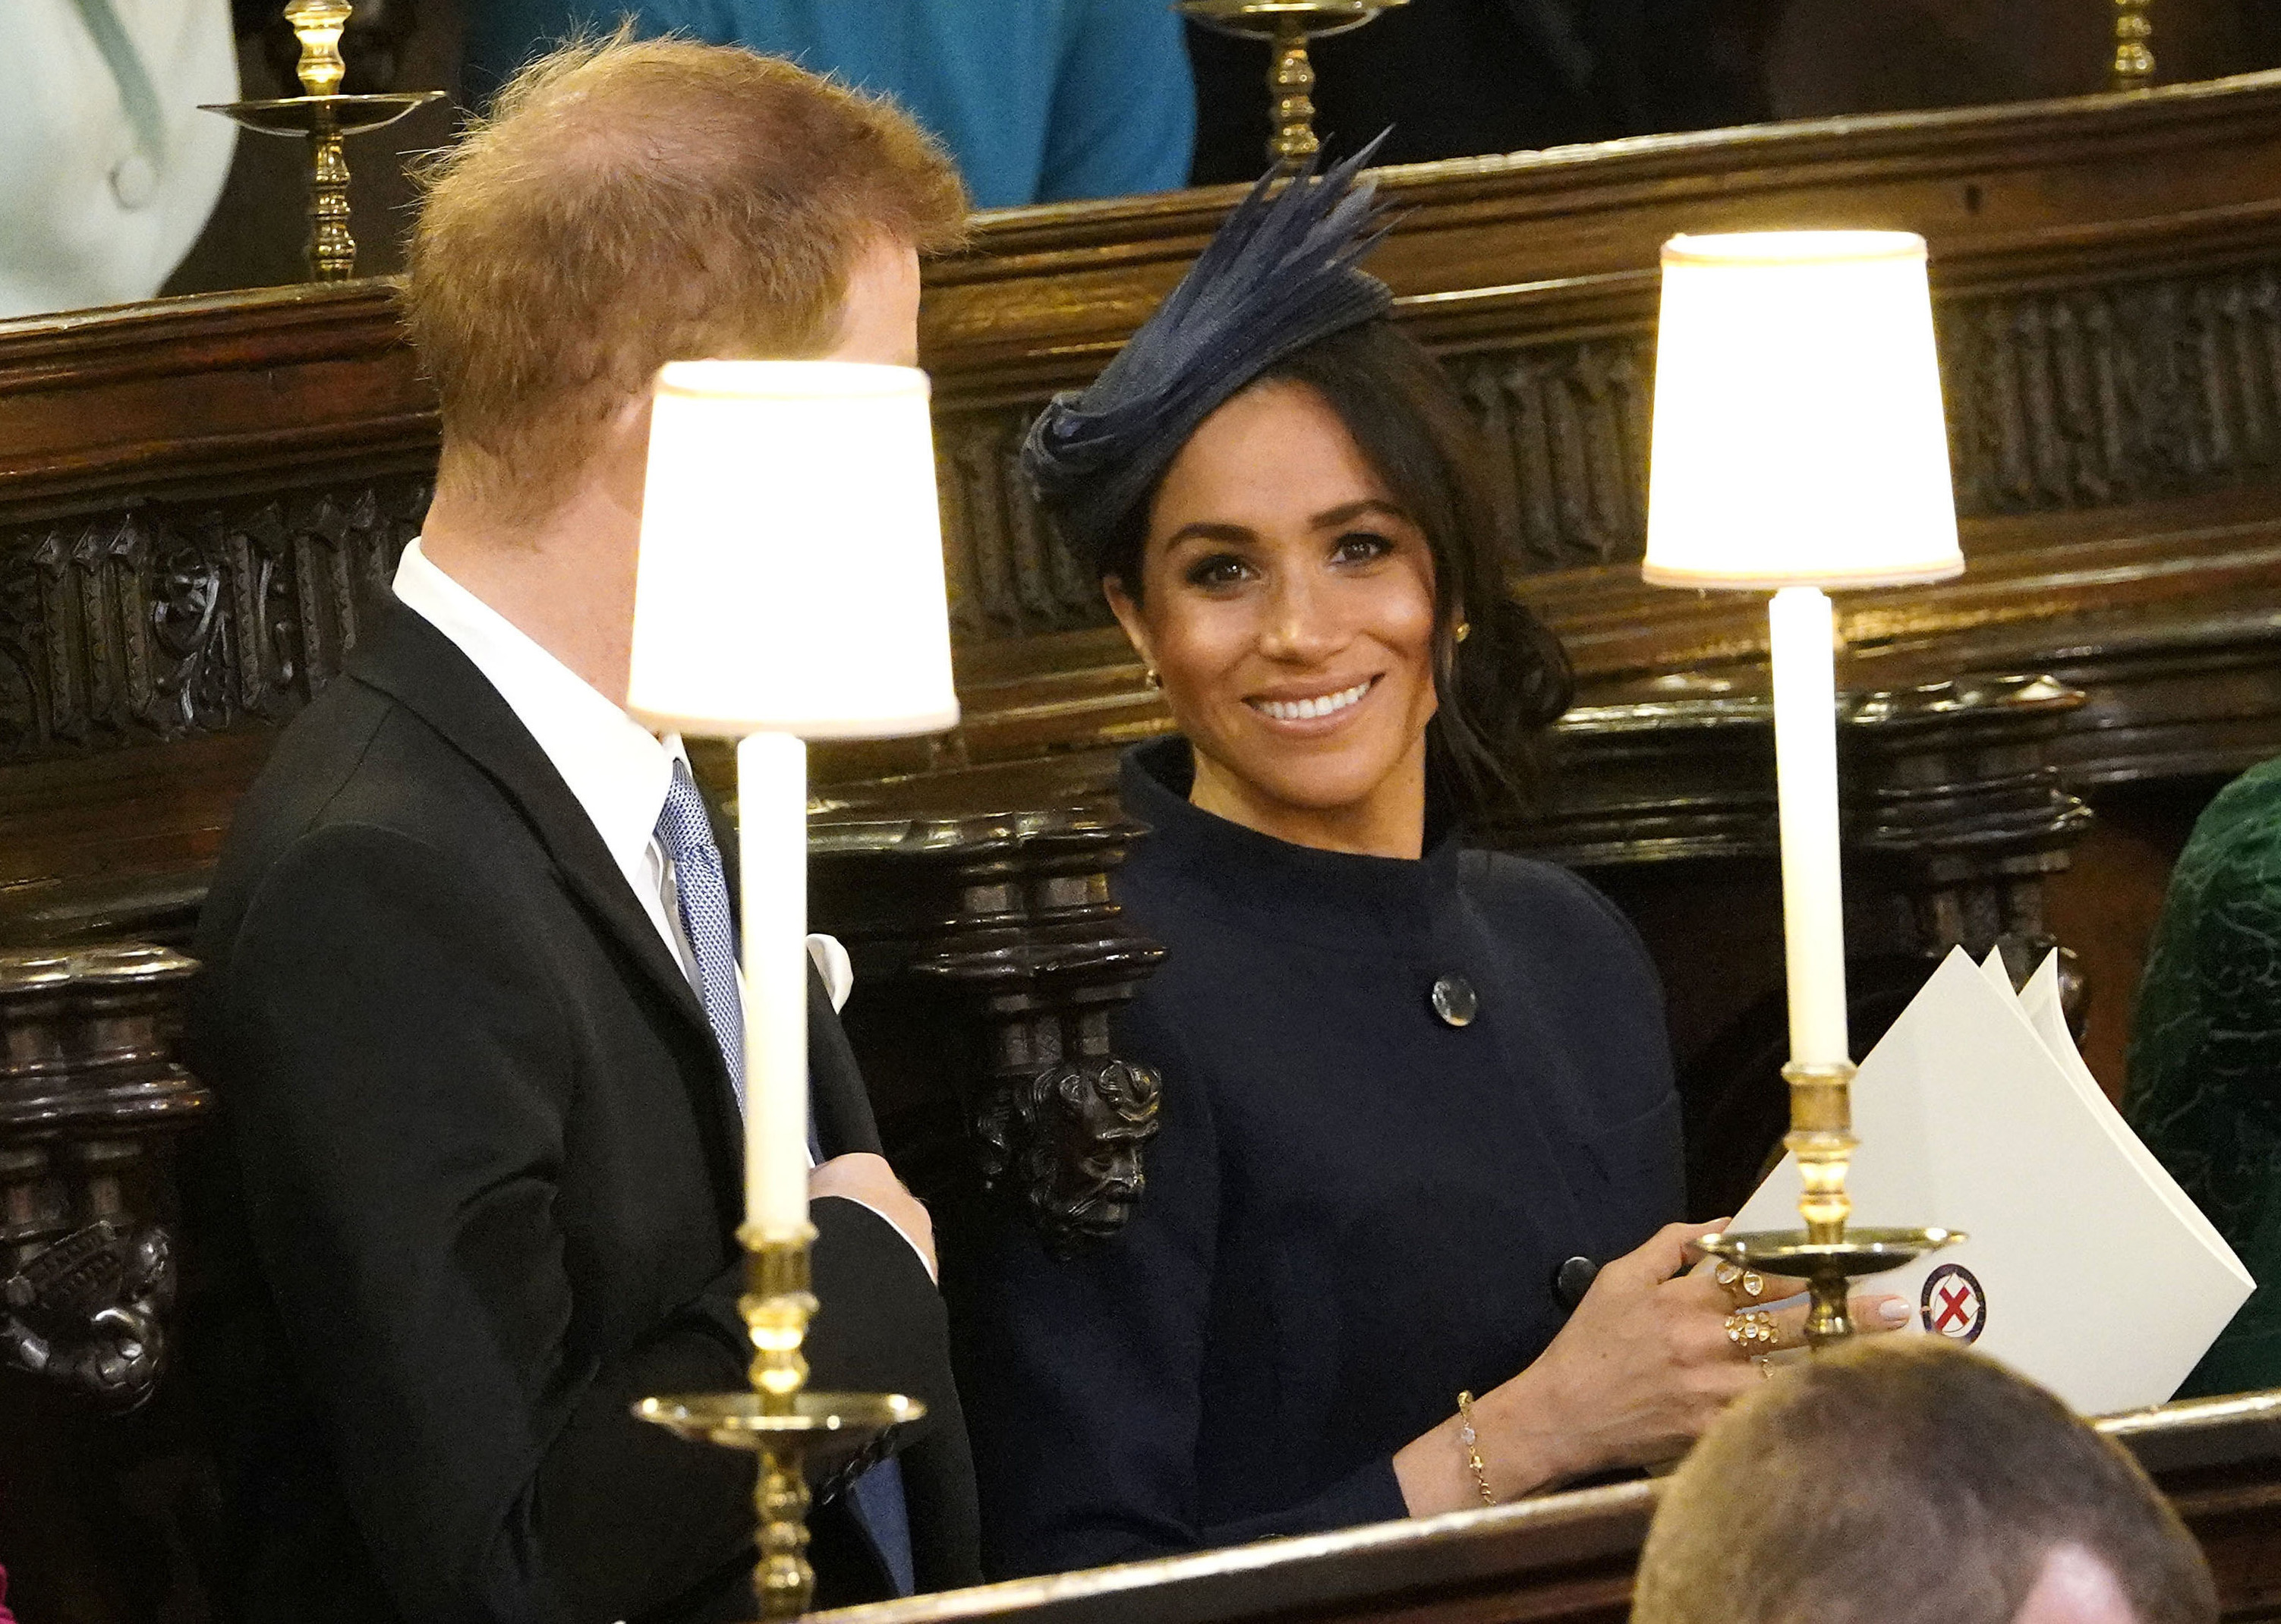 OCT 12: Prince Harry, Duke of Sussex and Meghan, Duchess of Sussex